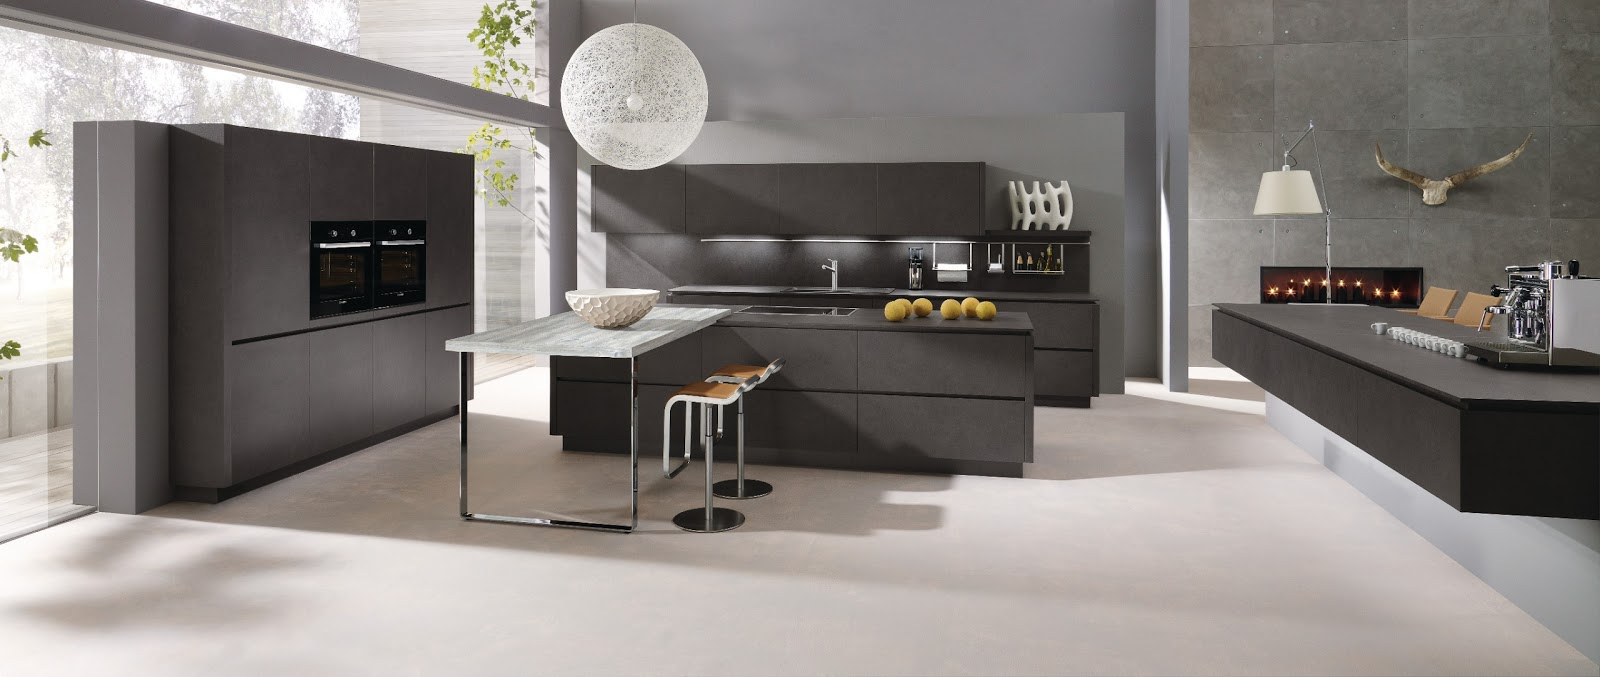 Cuisine design anthracite avec lot - Cuisne design ...